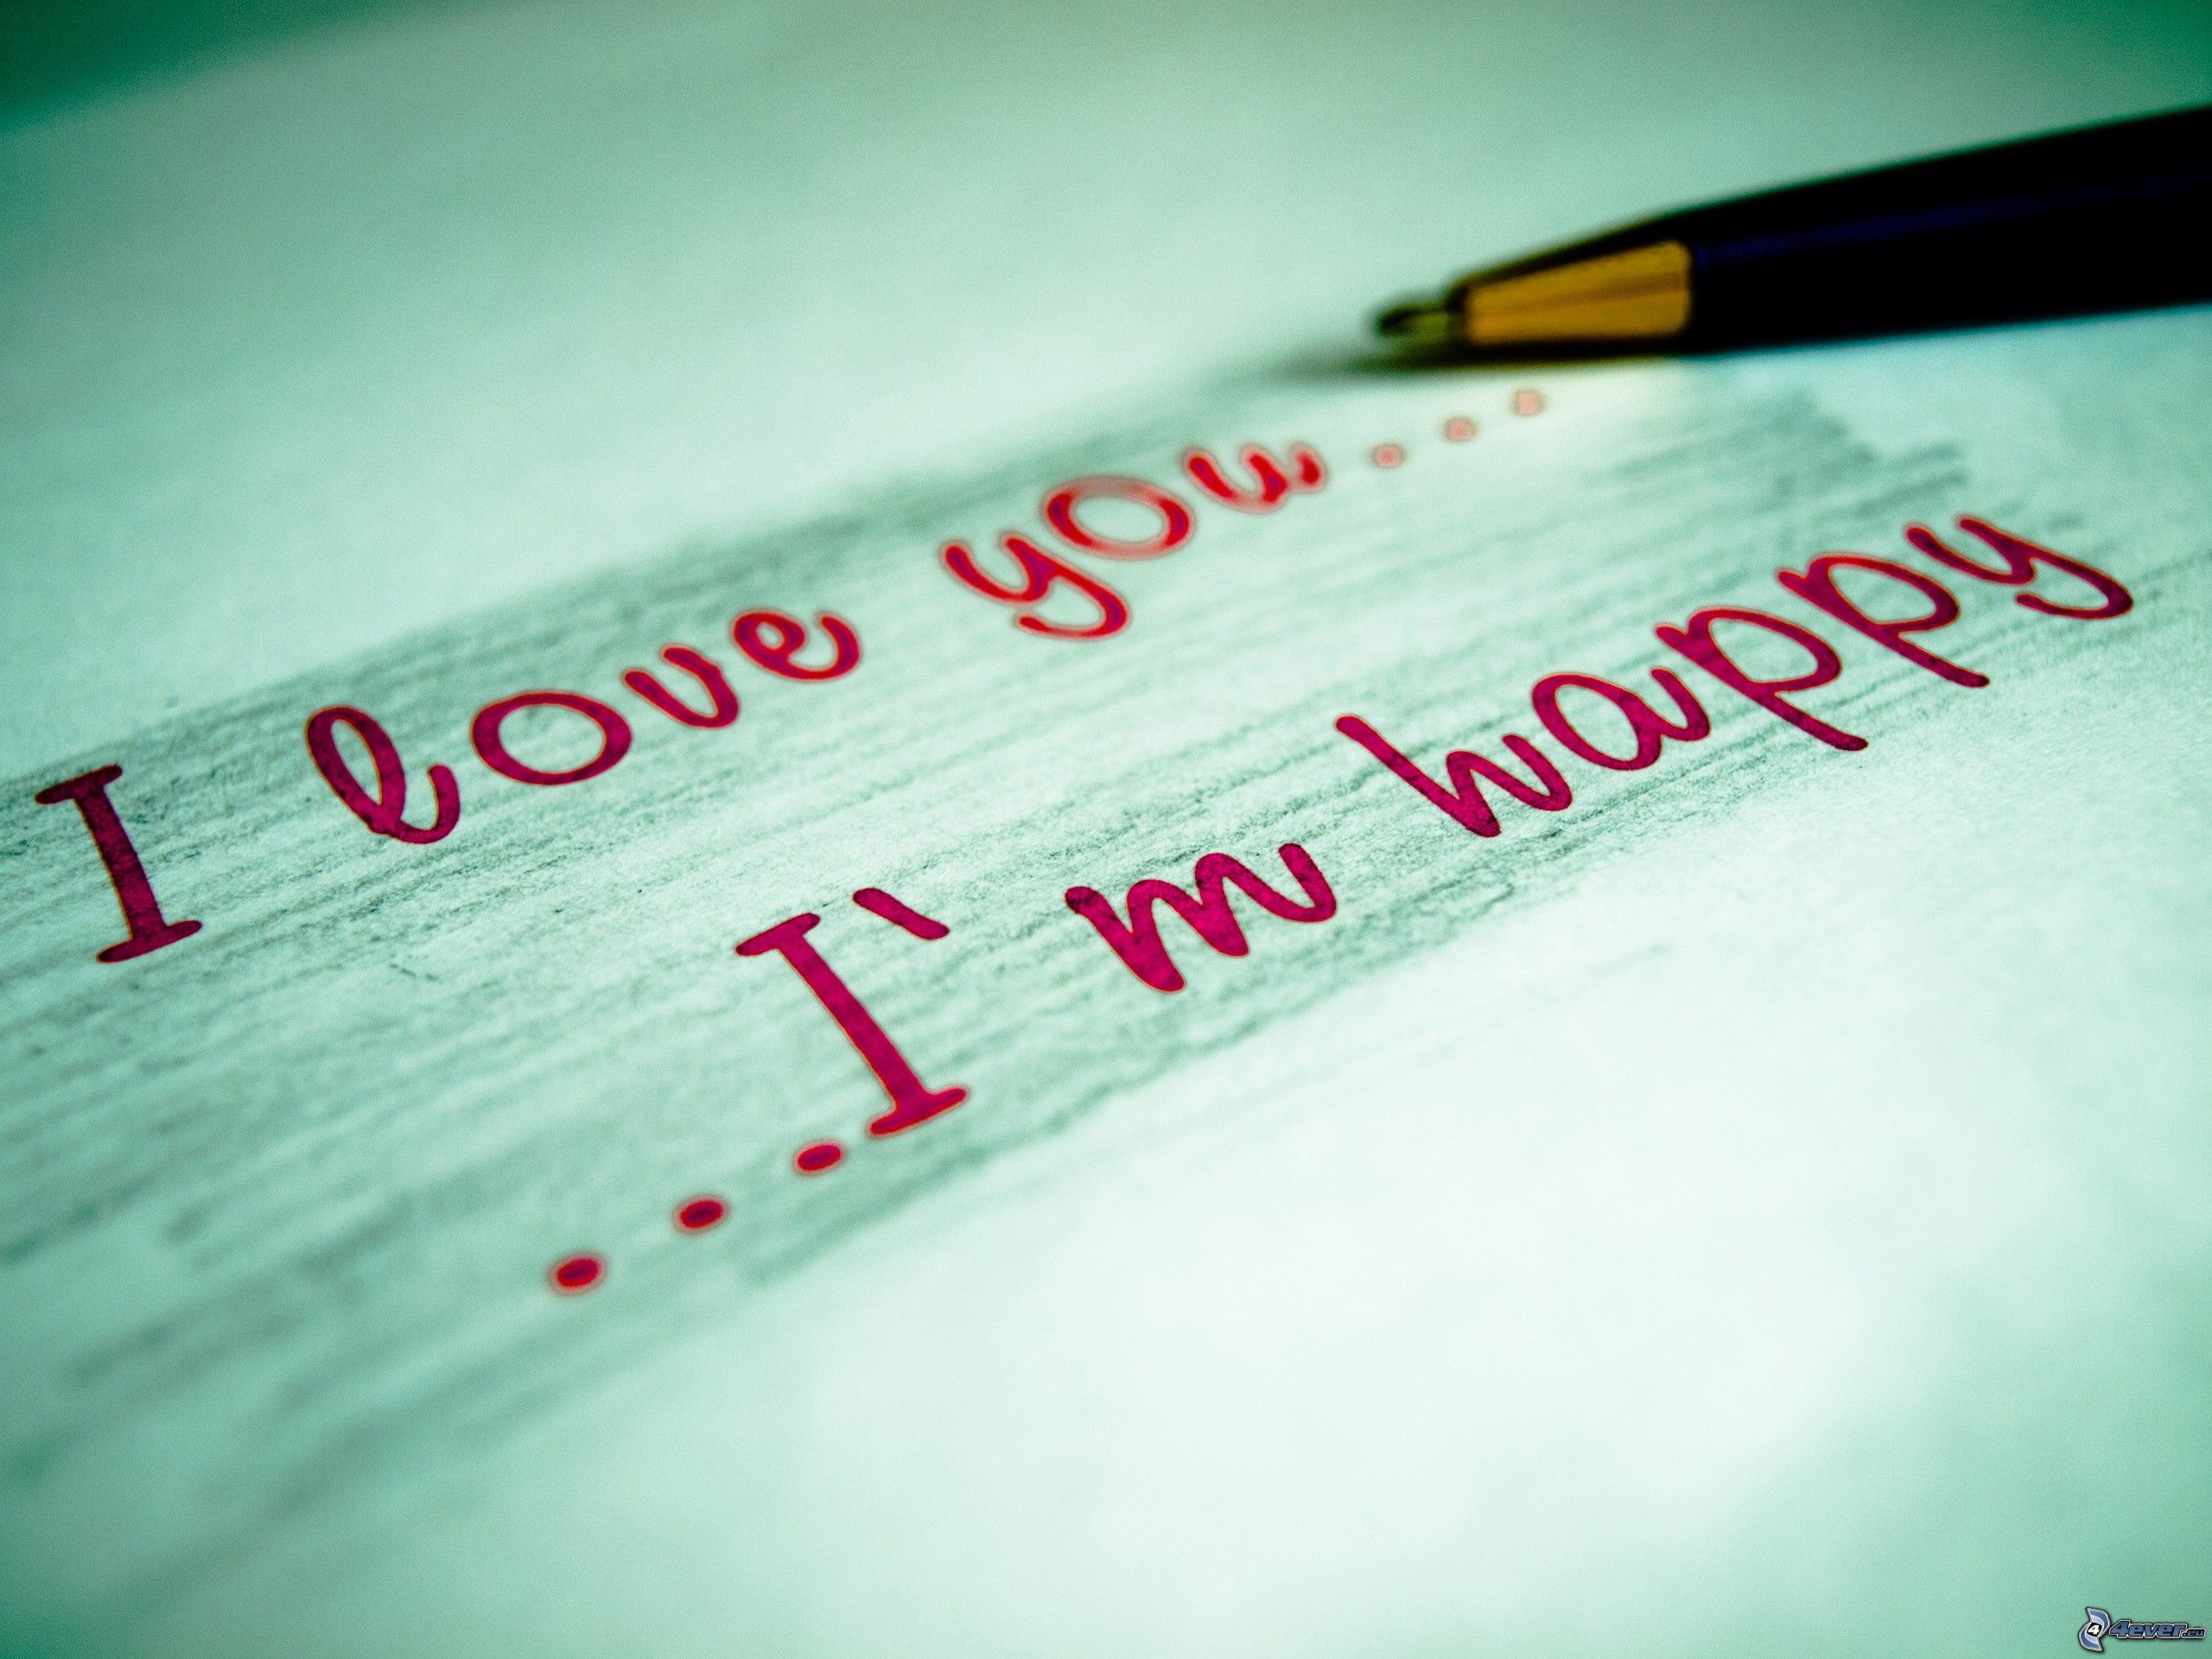 i_love_you_desktop_wallpaper_03.